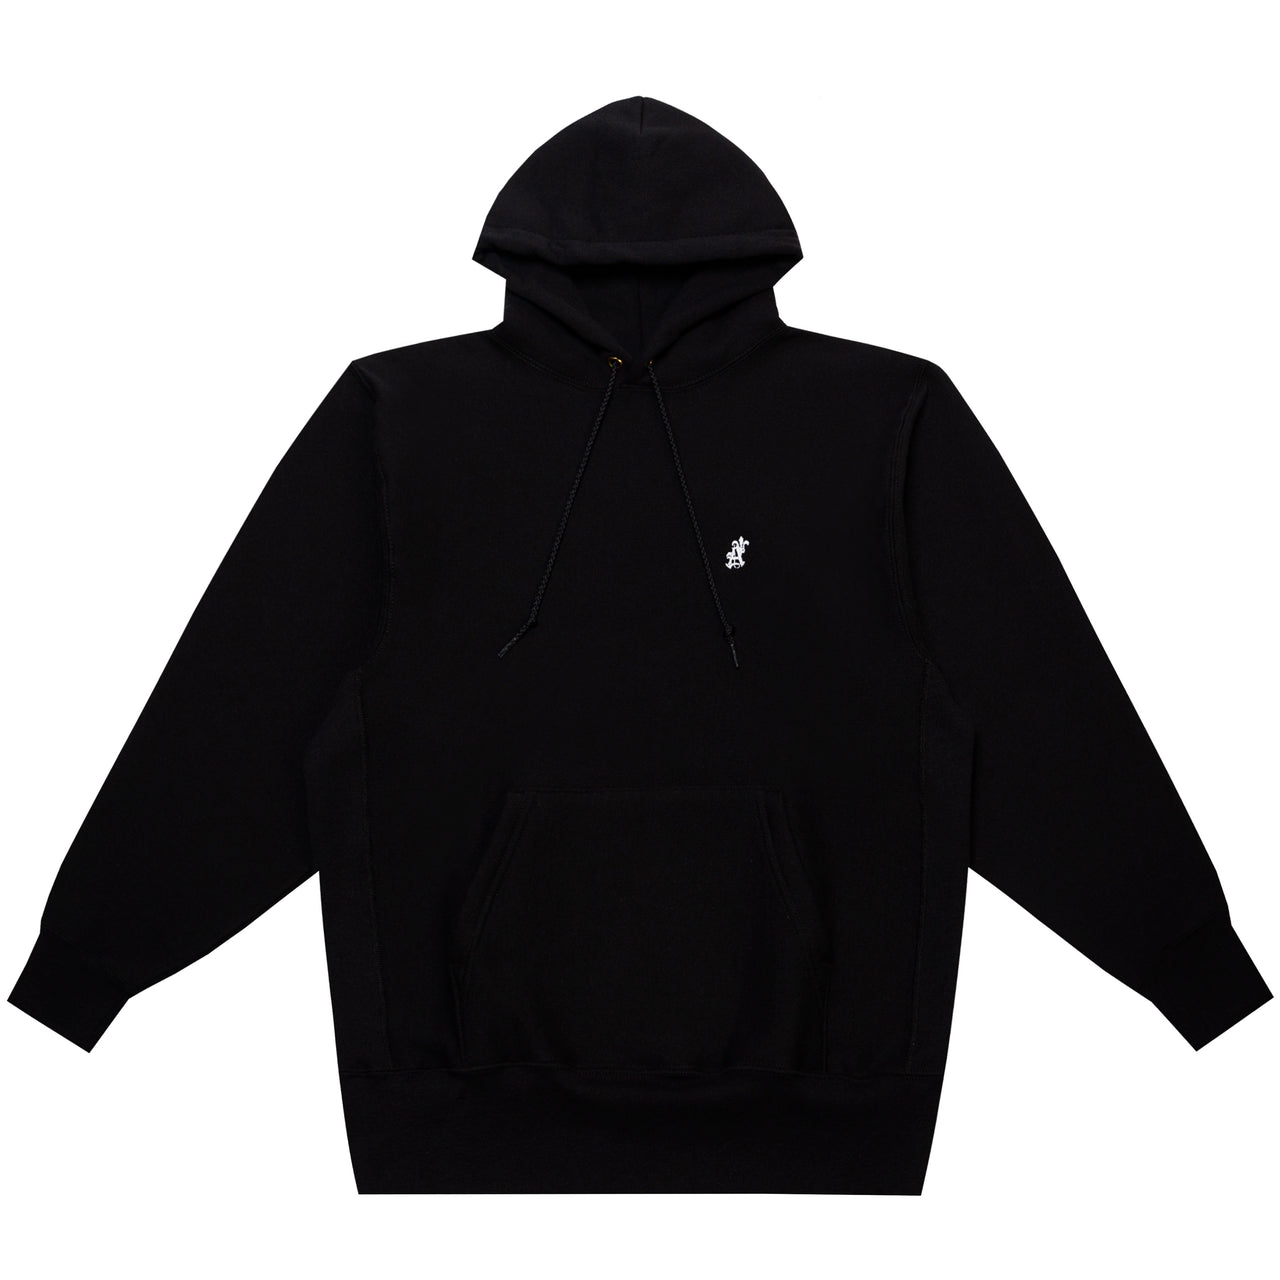 CROSS-KNIT PULLOVER HOODED FLEECE SP21 - MADE IN USA